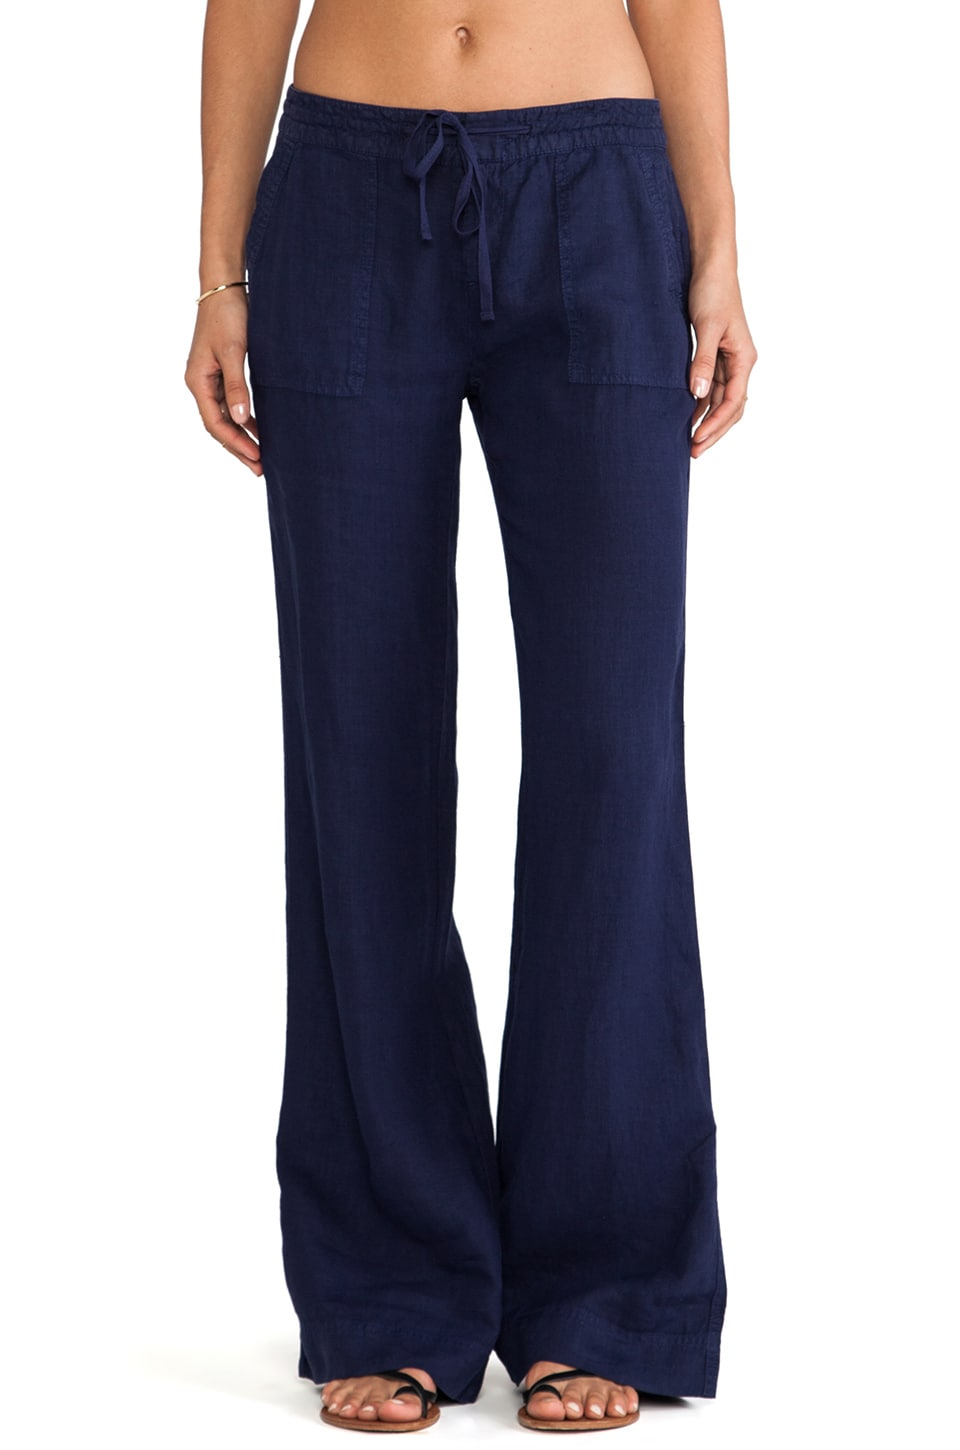 Joie Javina Wide Leg Pant in Dark Navy